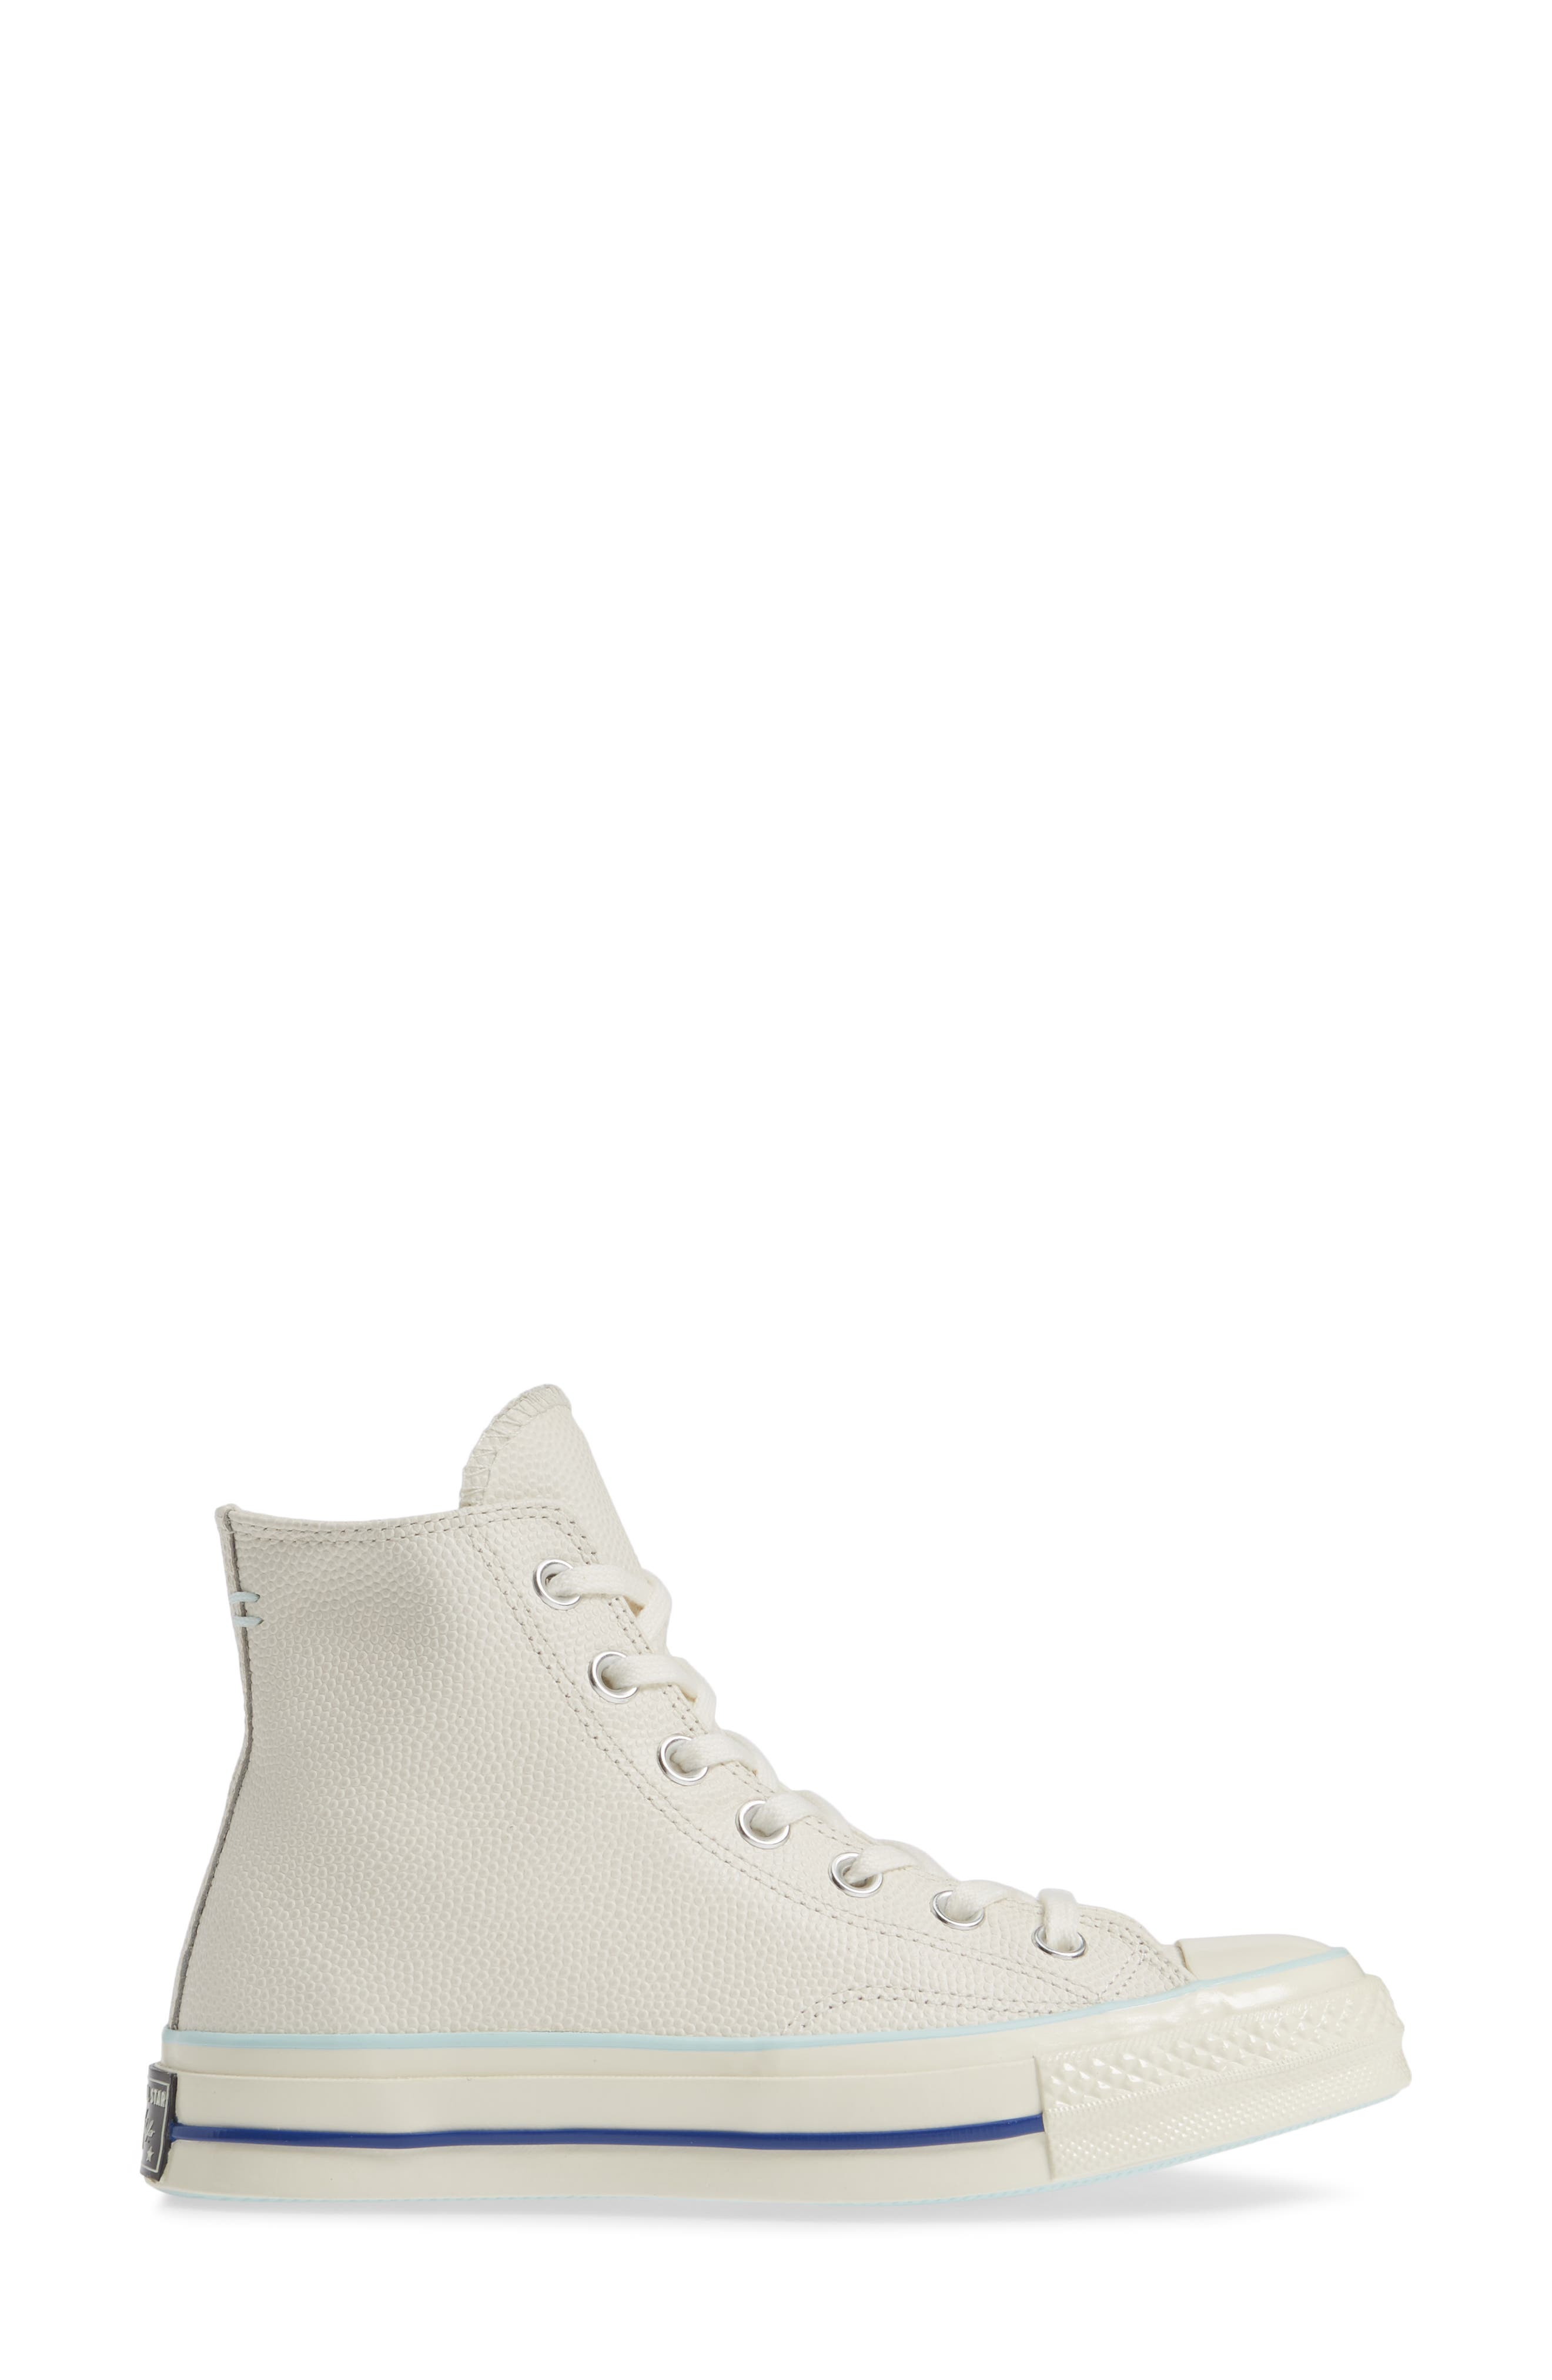 CONVERSE, Chuck Taylor<sup>®</sup> All Star<sup>®</sup> 70 High Top Leather Sneaker, Alternate thumbnail 3, color, EGRET/ TEAL TINT/ EGRET